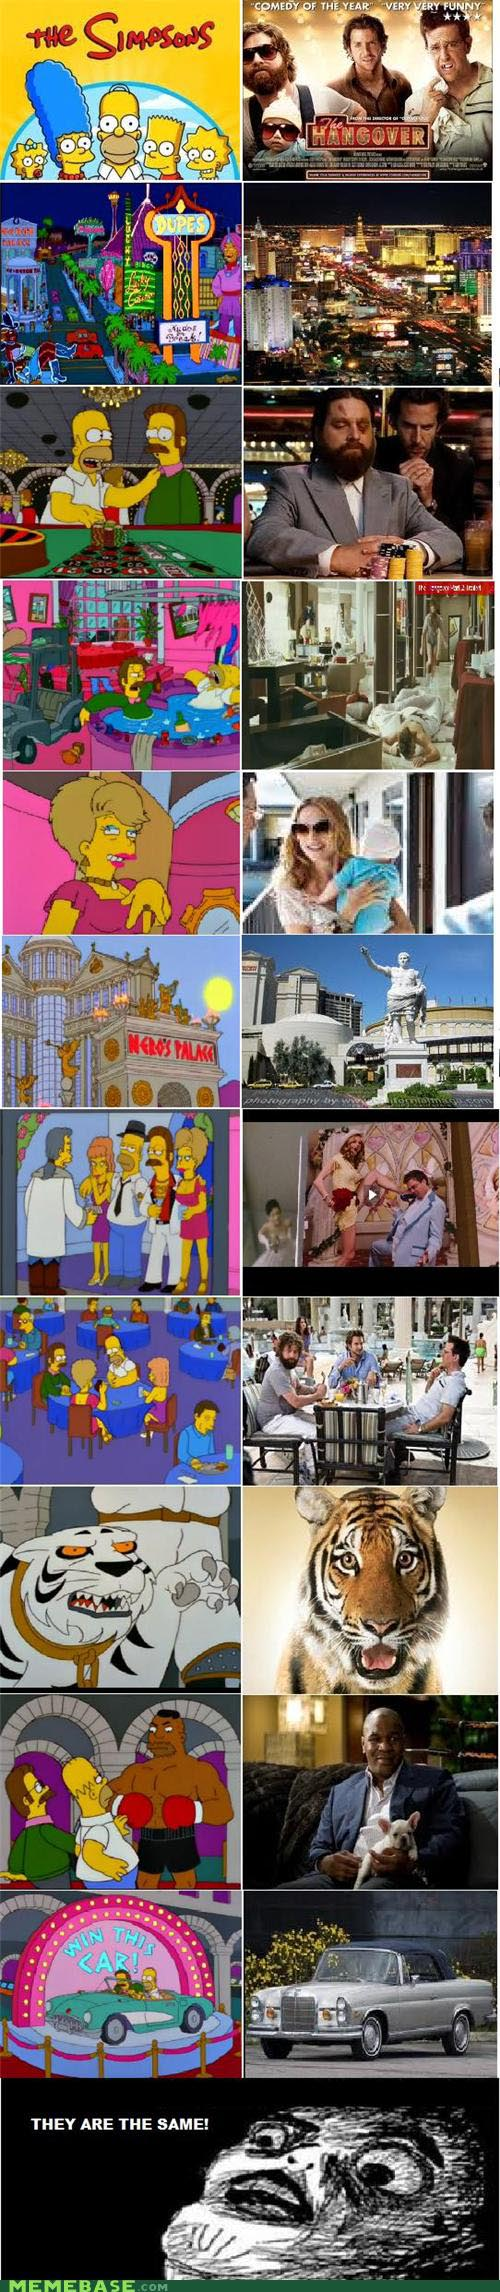 The Simpsons vs The Hangover